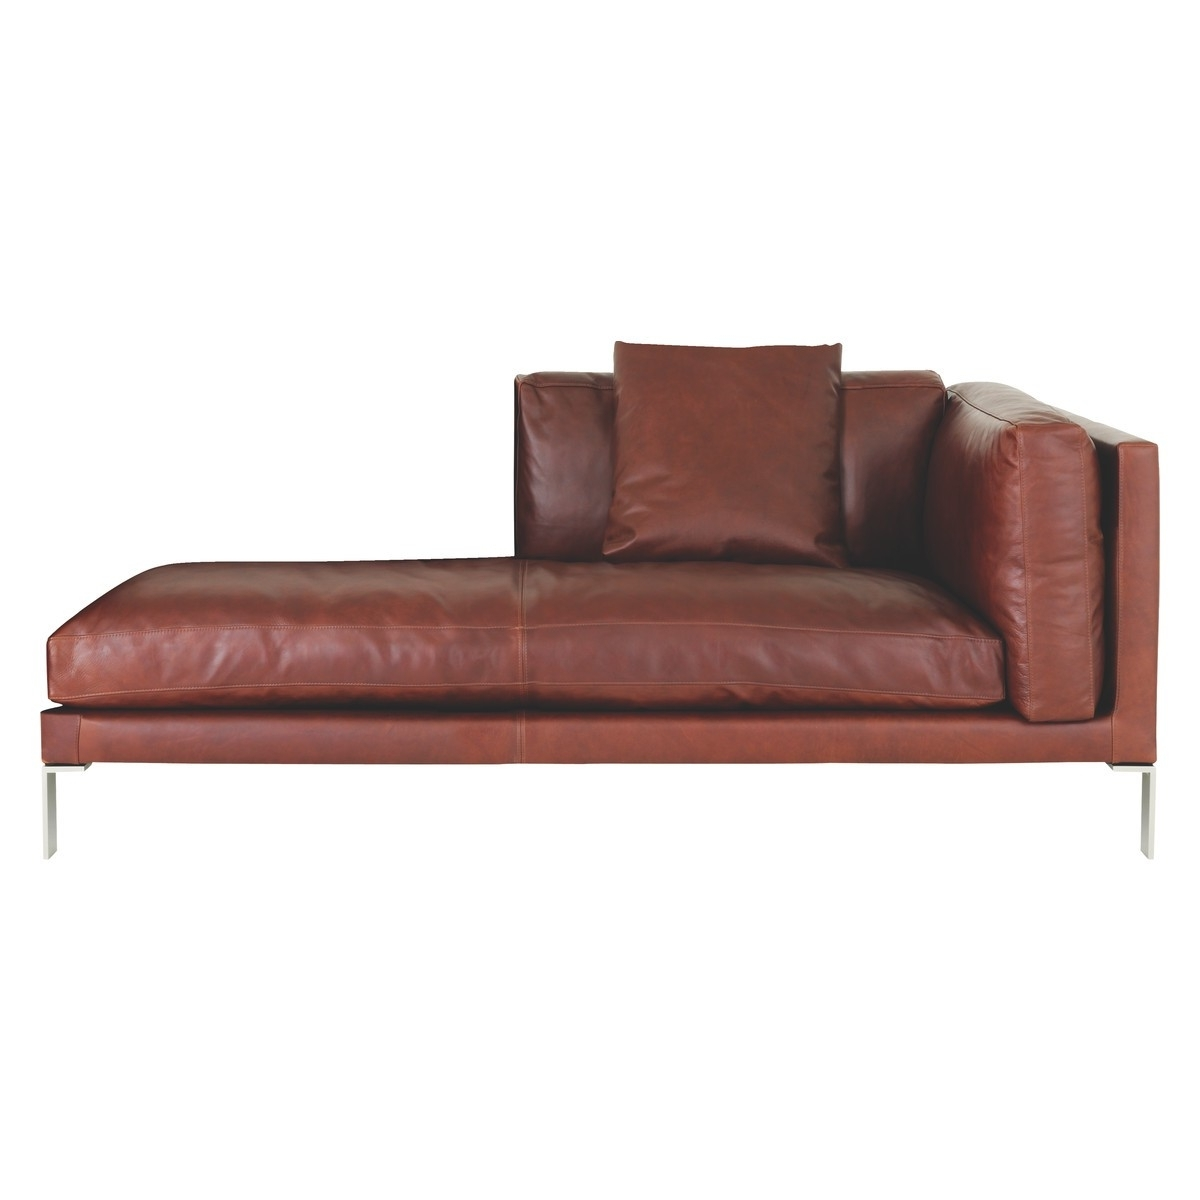 Terrific Tan Leather Chaise Lounge 45 With Fabulous Chaises For Latest Leather Chaises (View 12 of 15)